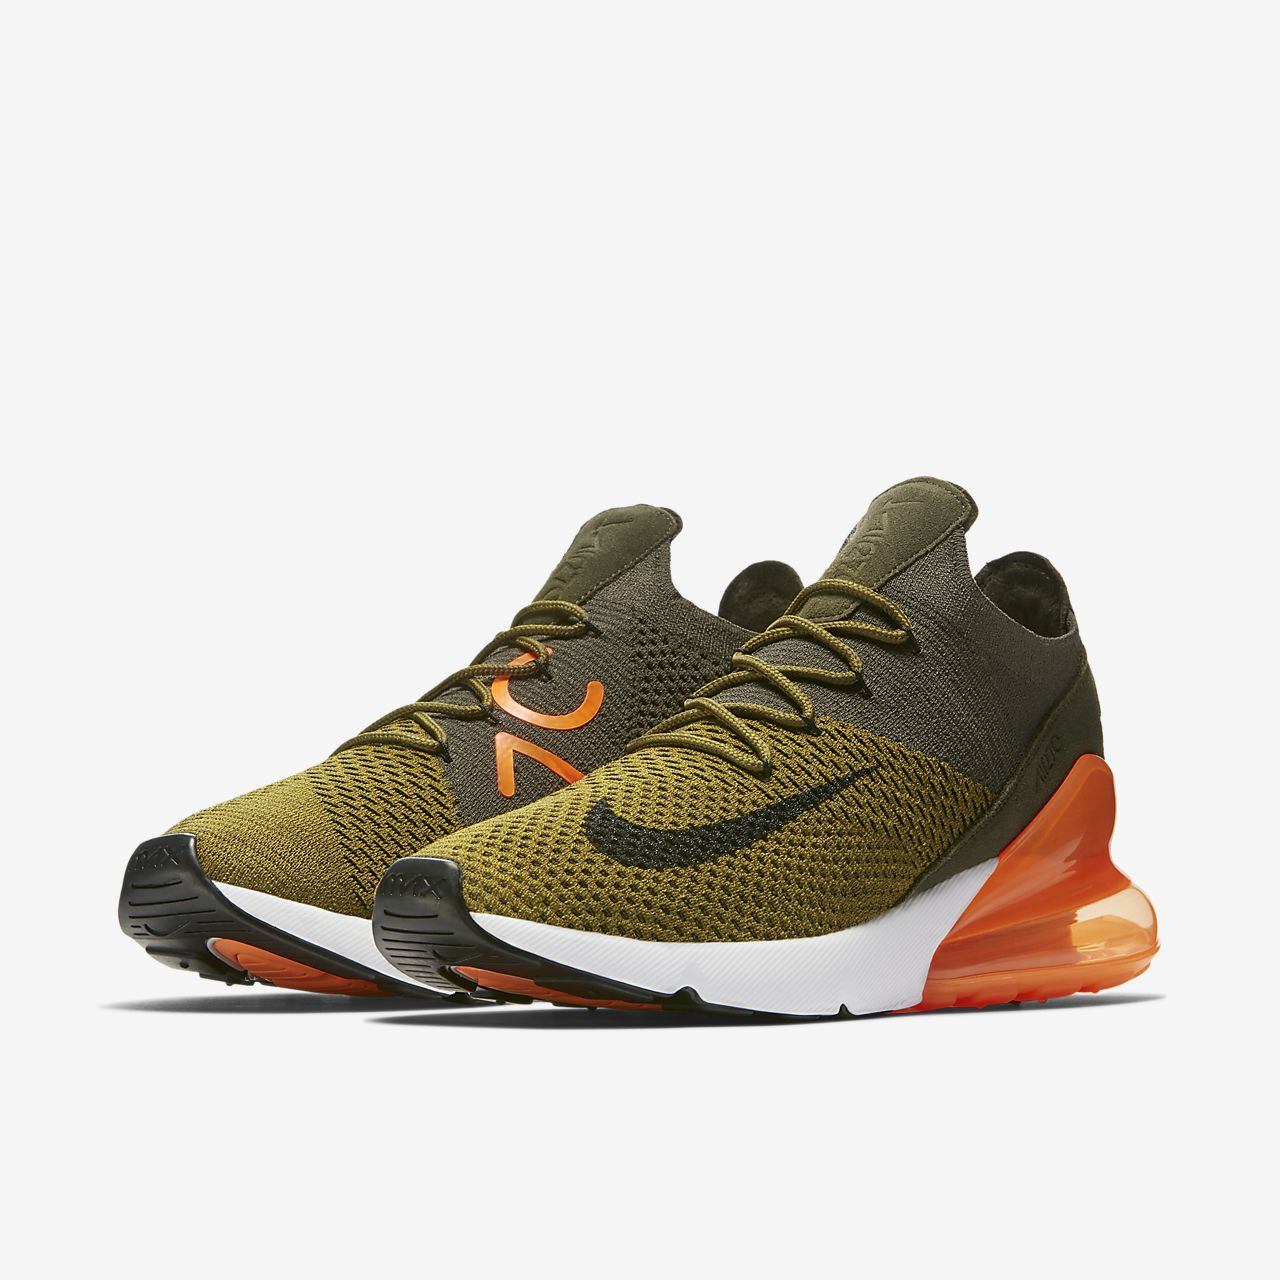 Men's Flyknit 270 Max Shoe Air Nike pqHI1zx